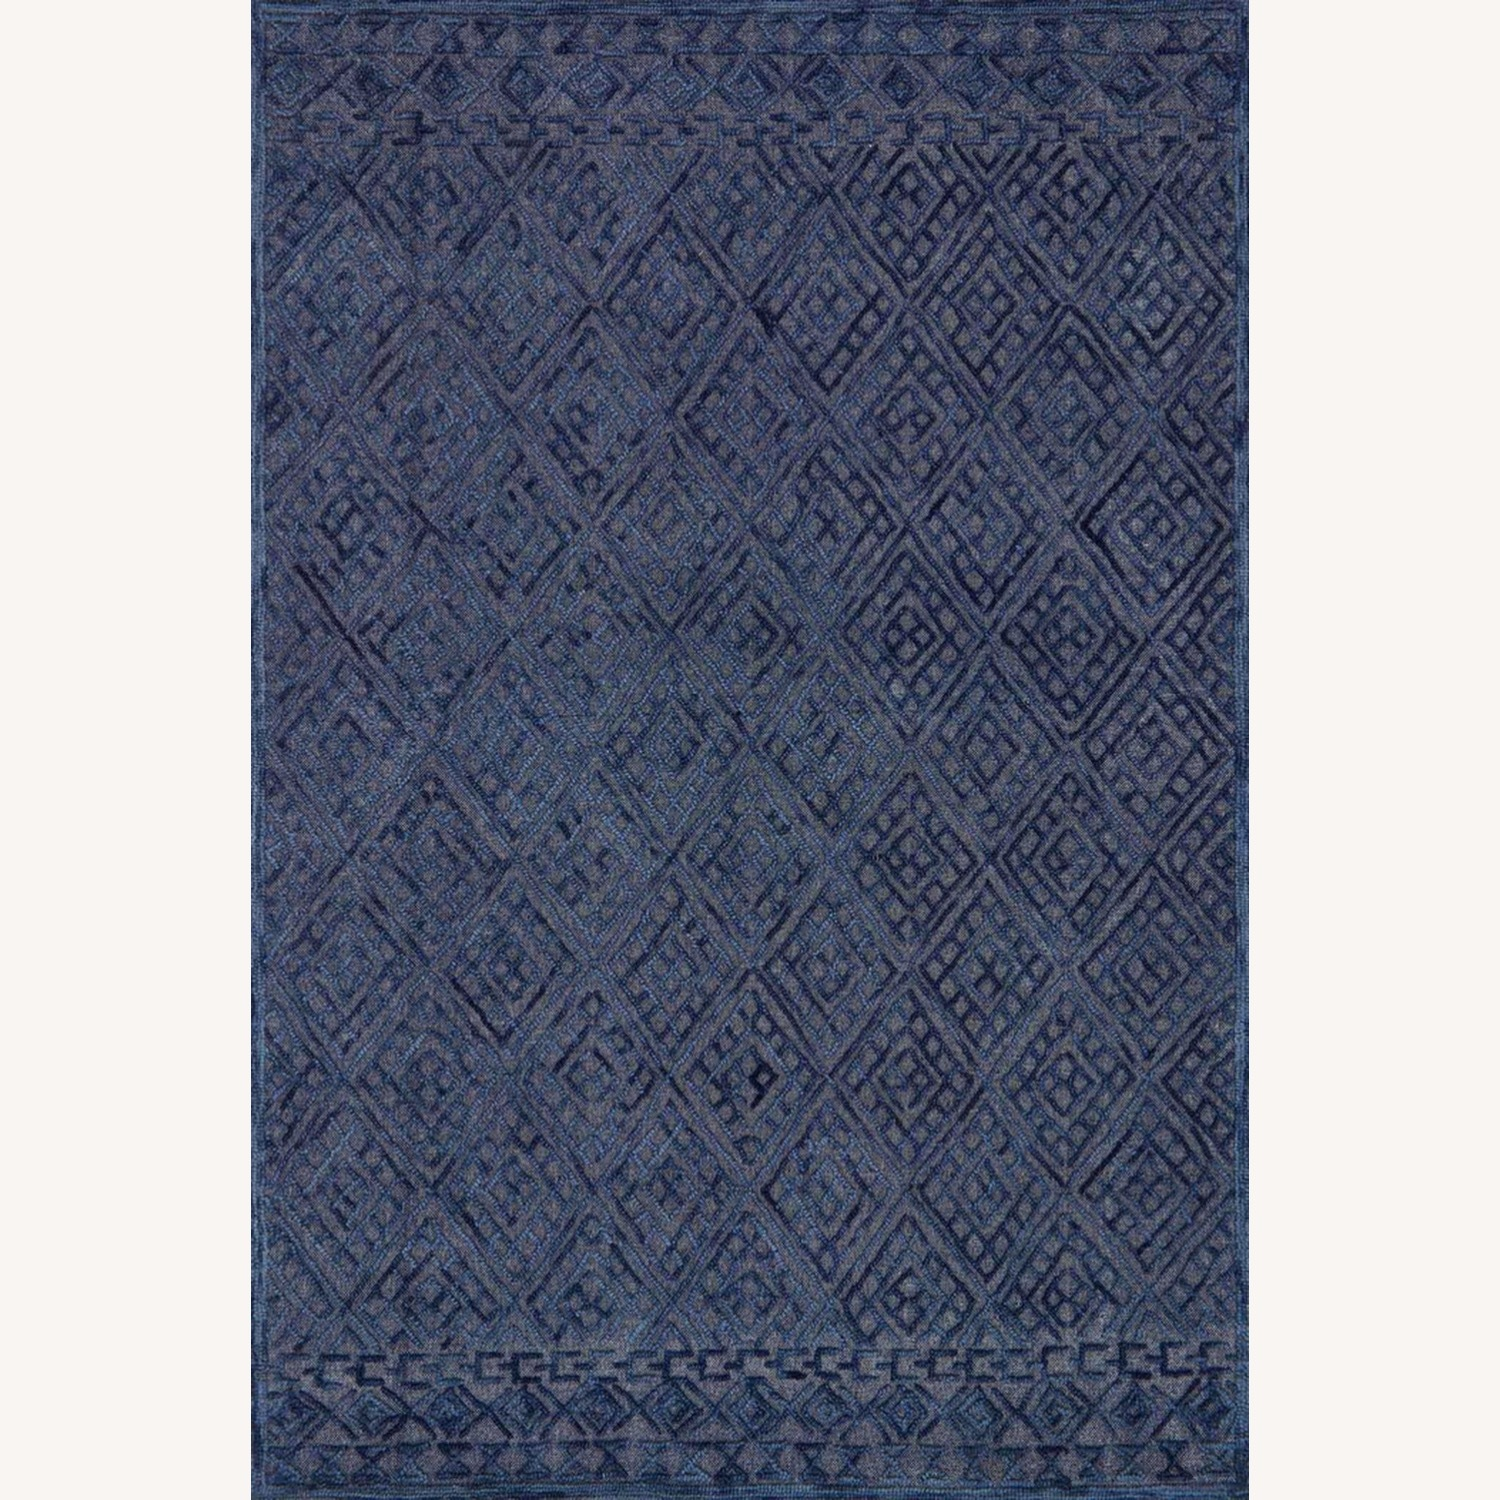 Navy Area Rug - image-3